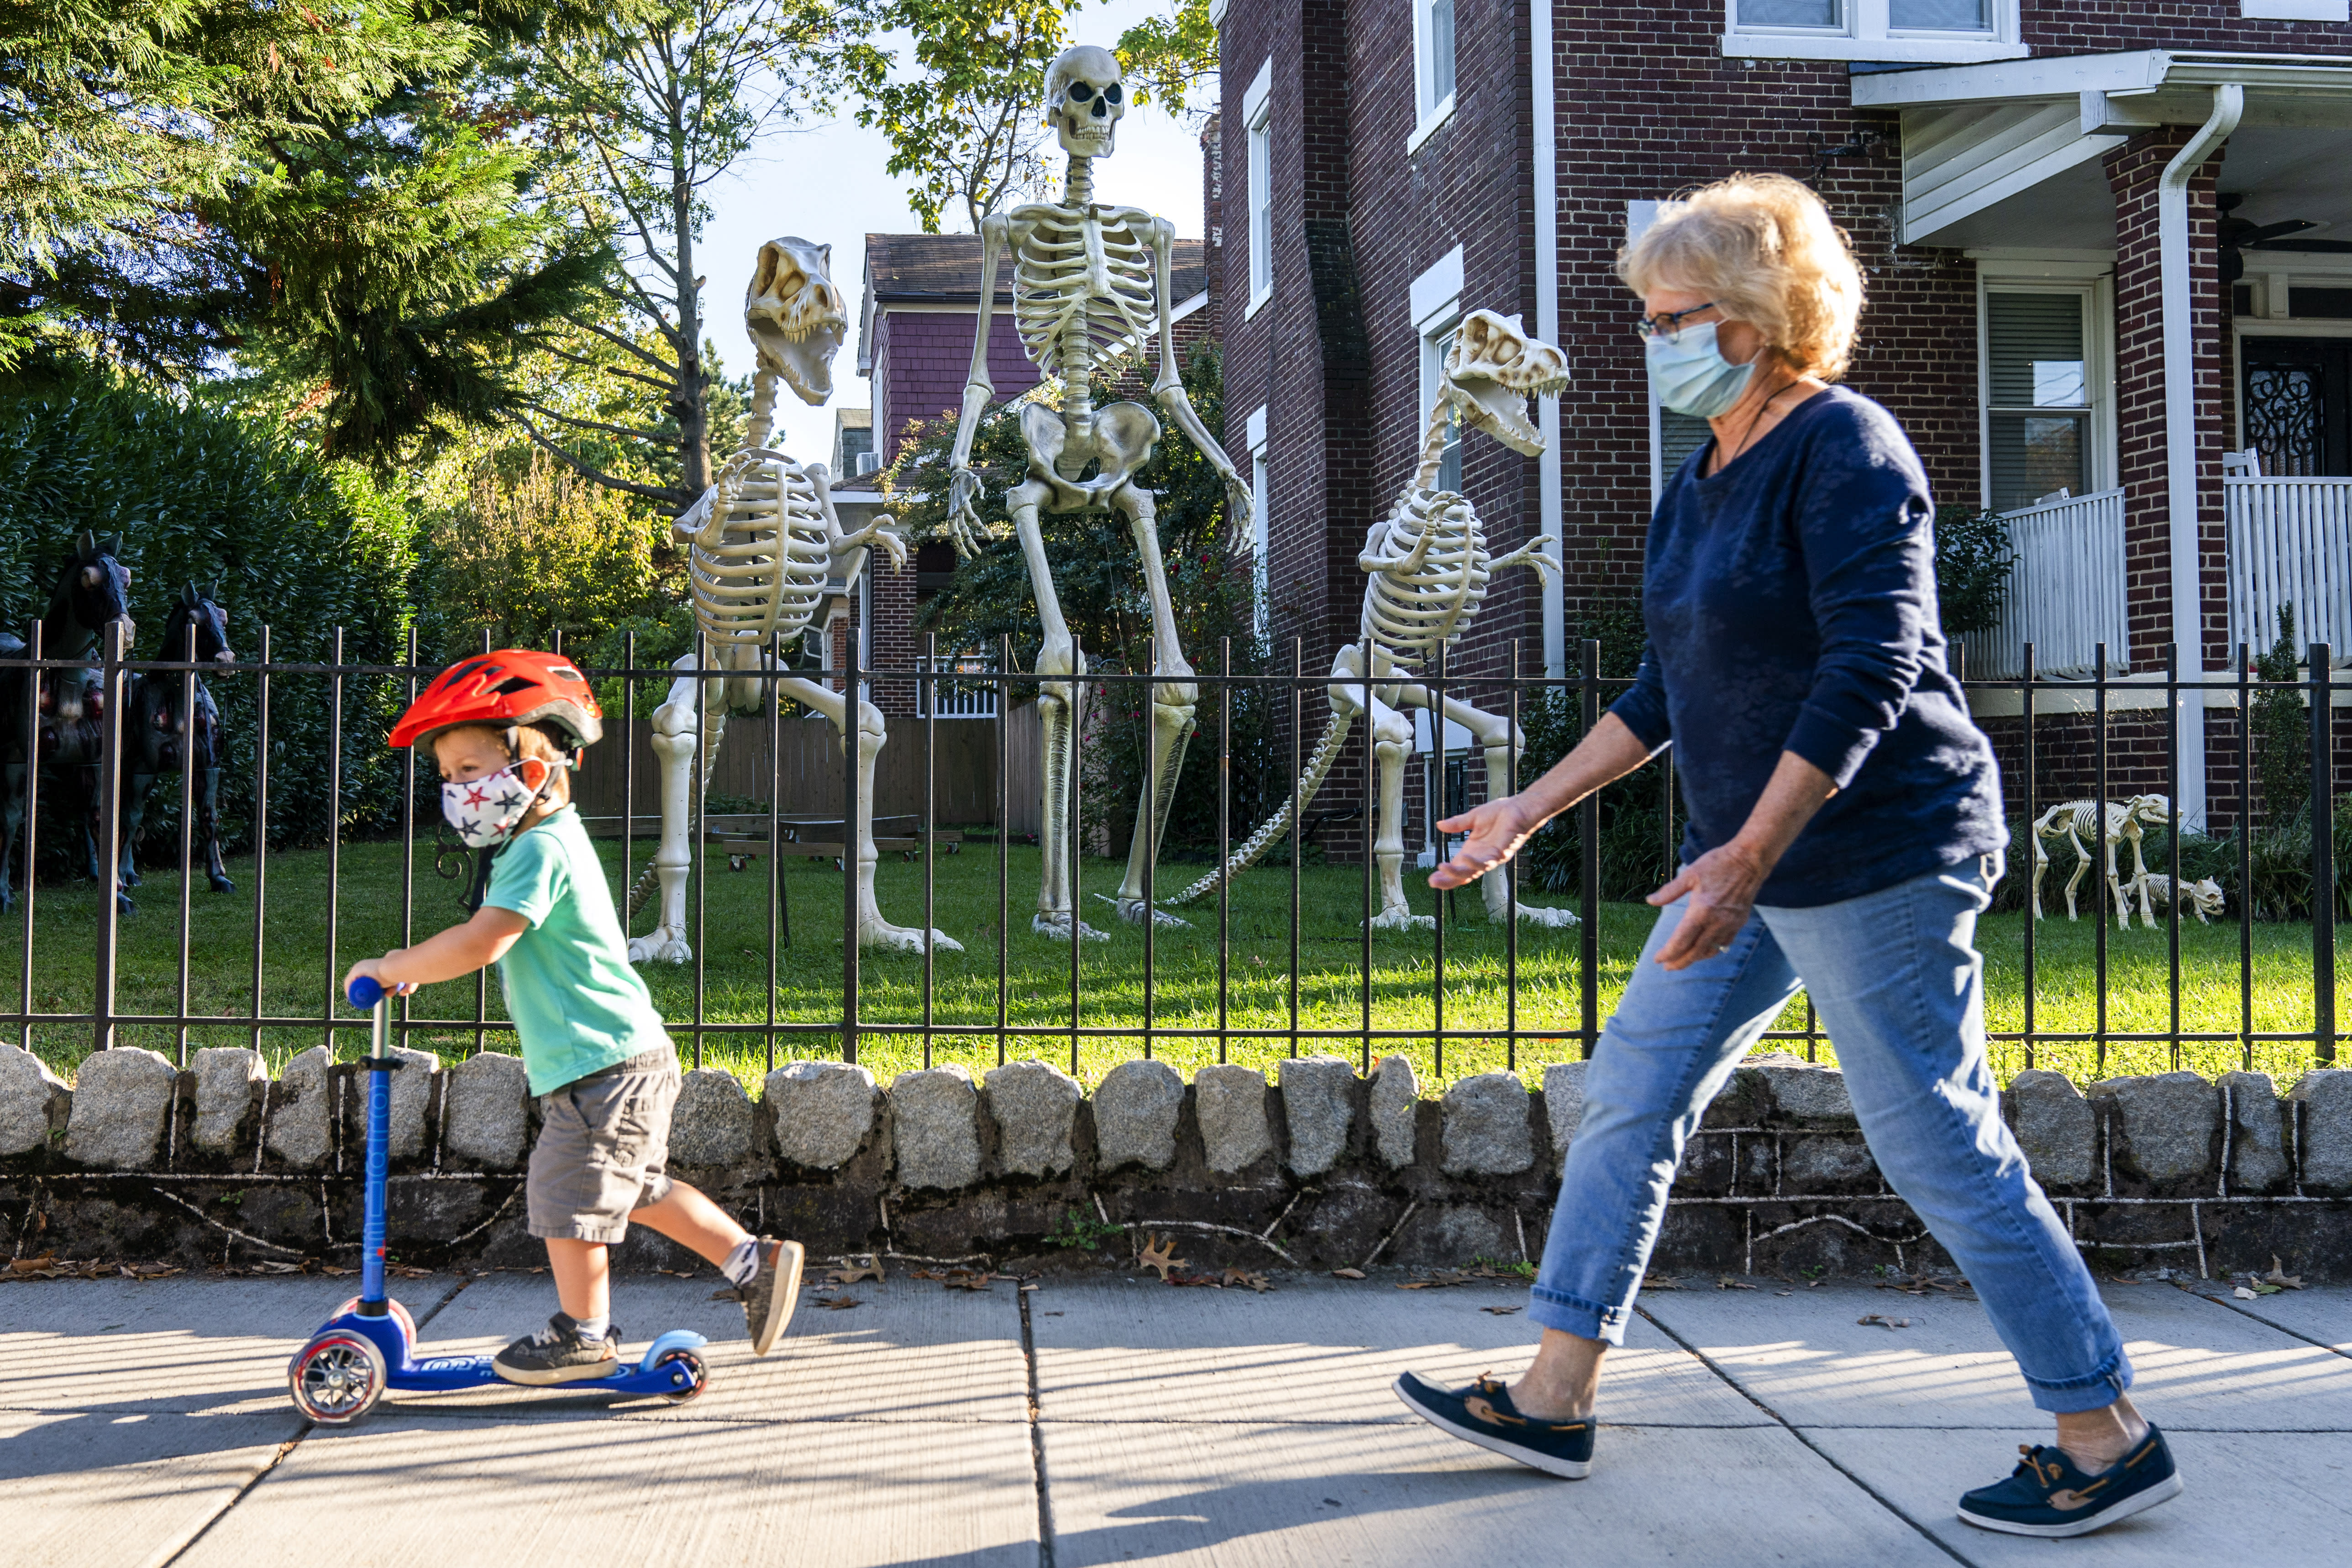 Sam McNamara, 3, of Washington, left, followed by his grandmother, scoots by a yard decorated with giant skeletons, both human and dinosaur, Wednesday, Oct. 14, 2020, in advance celebration of Halloween in Washington. (AP Photo/Jacquelyn Martin)